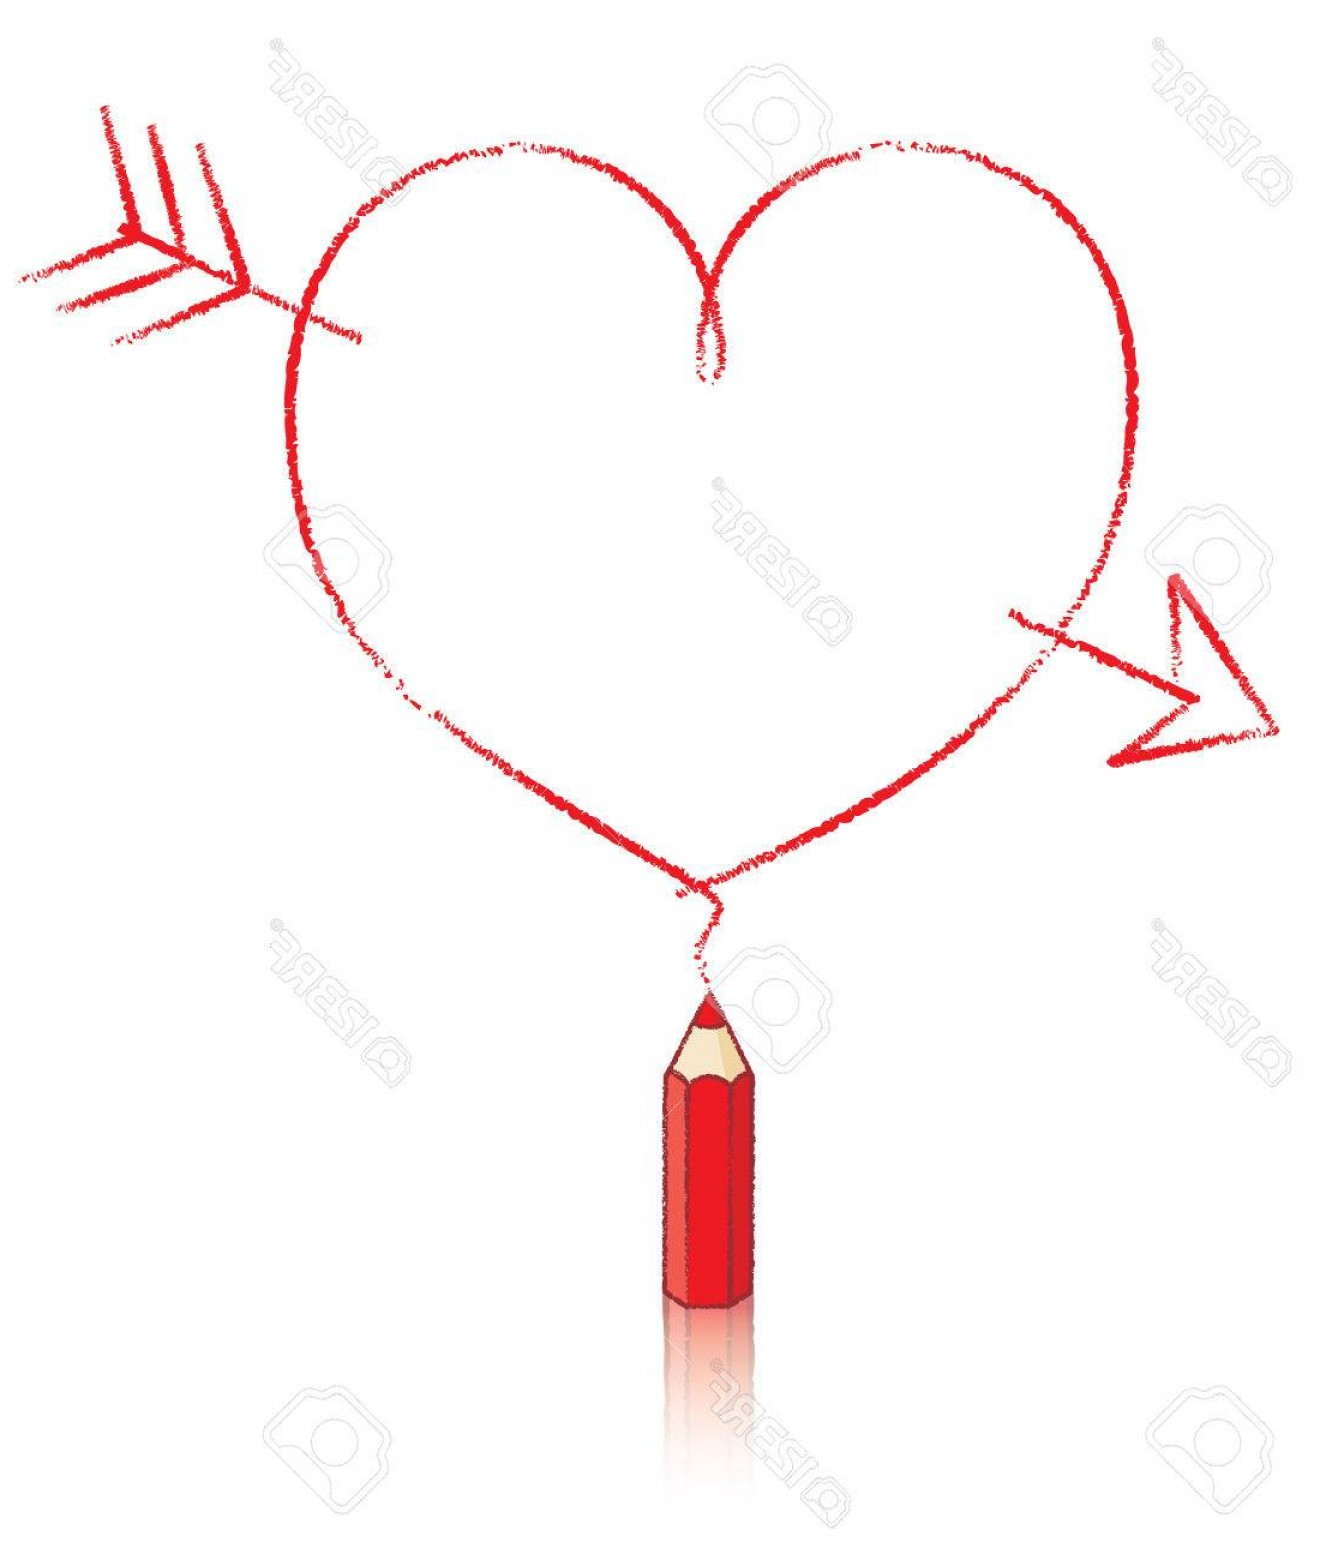 Small Arrow Vector: Photoempty Love Heart With Cupids Arrow Drawn By Small Red Pencil